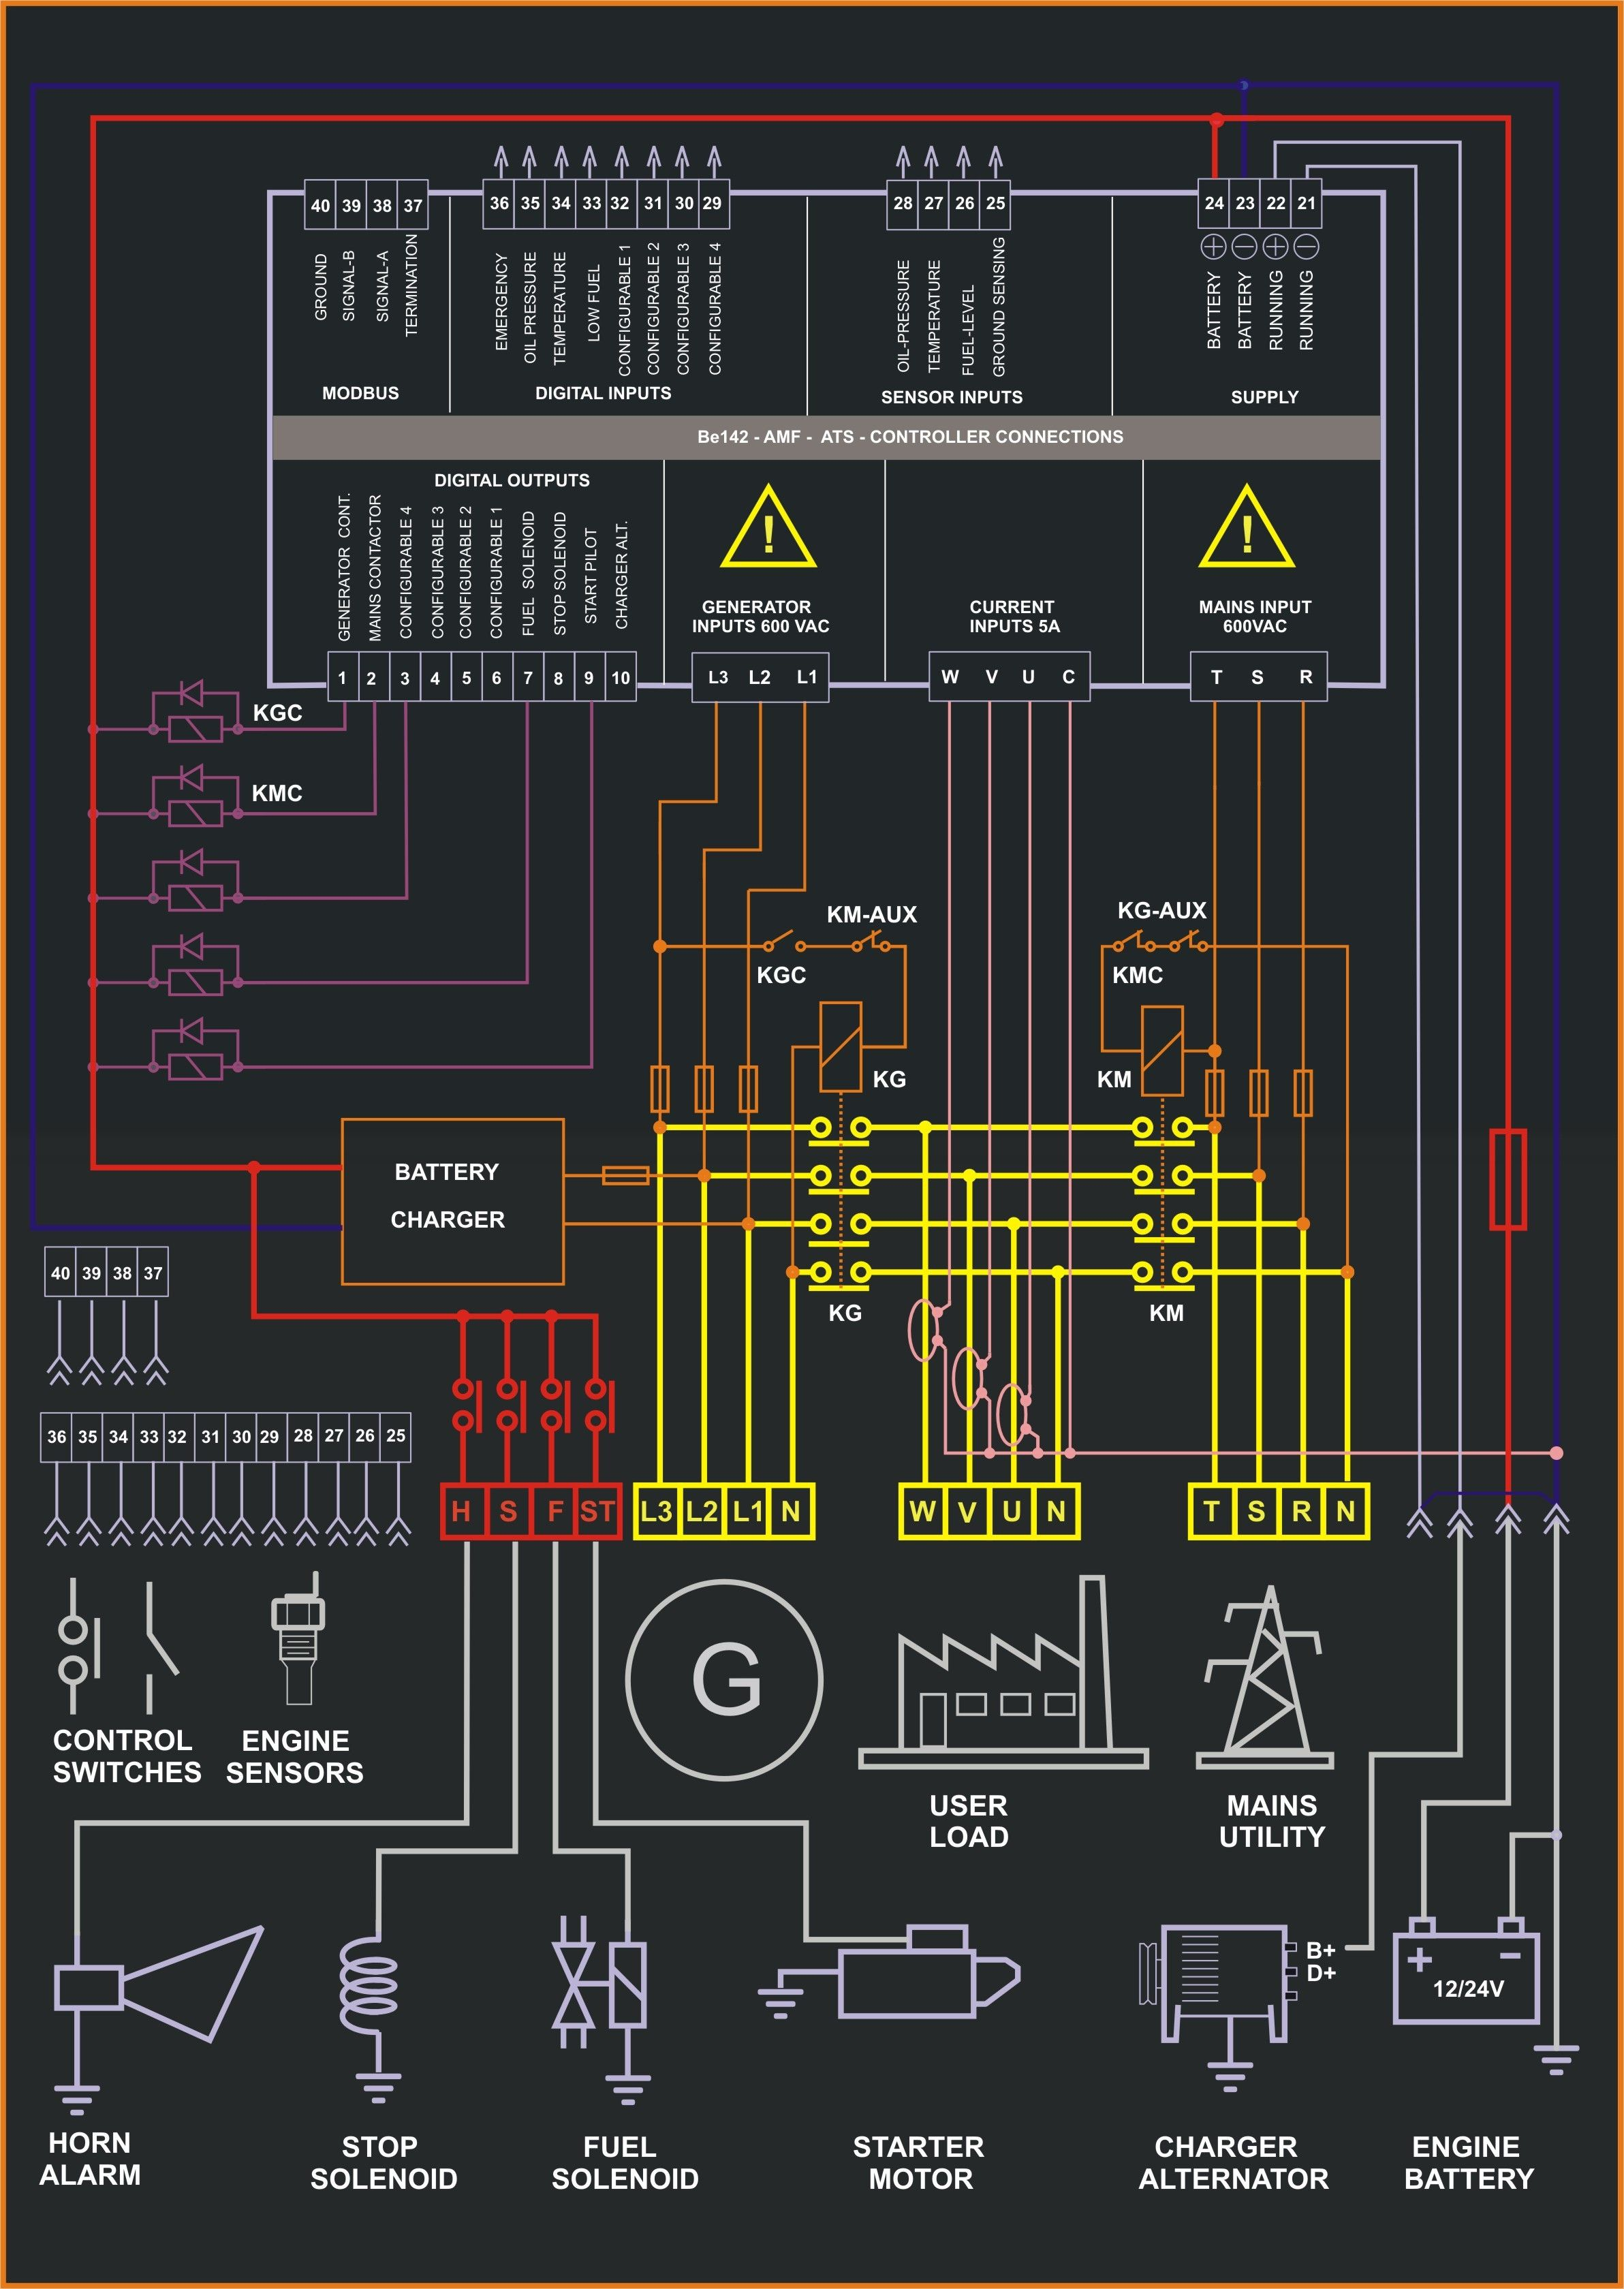 Plc Panel Wiring Diagram - Wiring Diagram Img